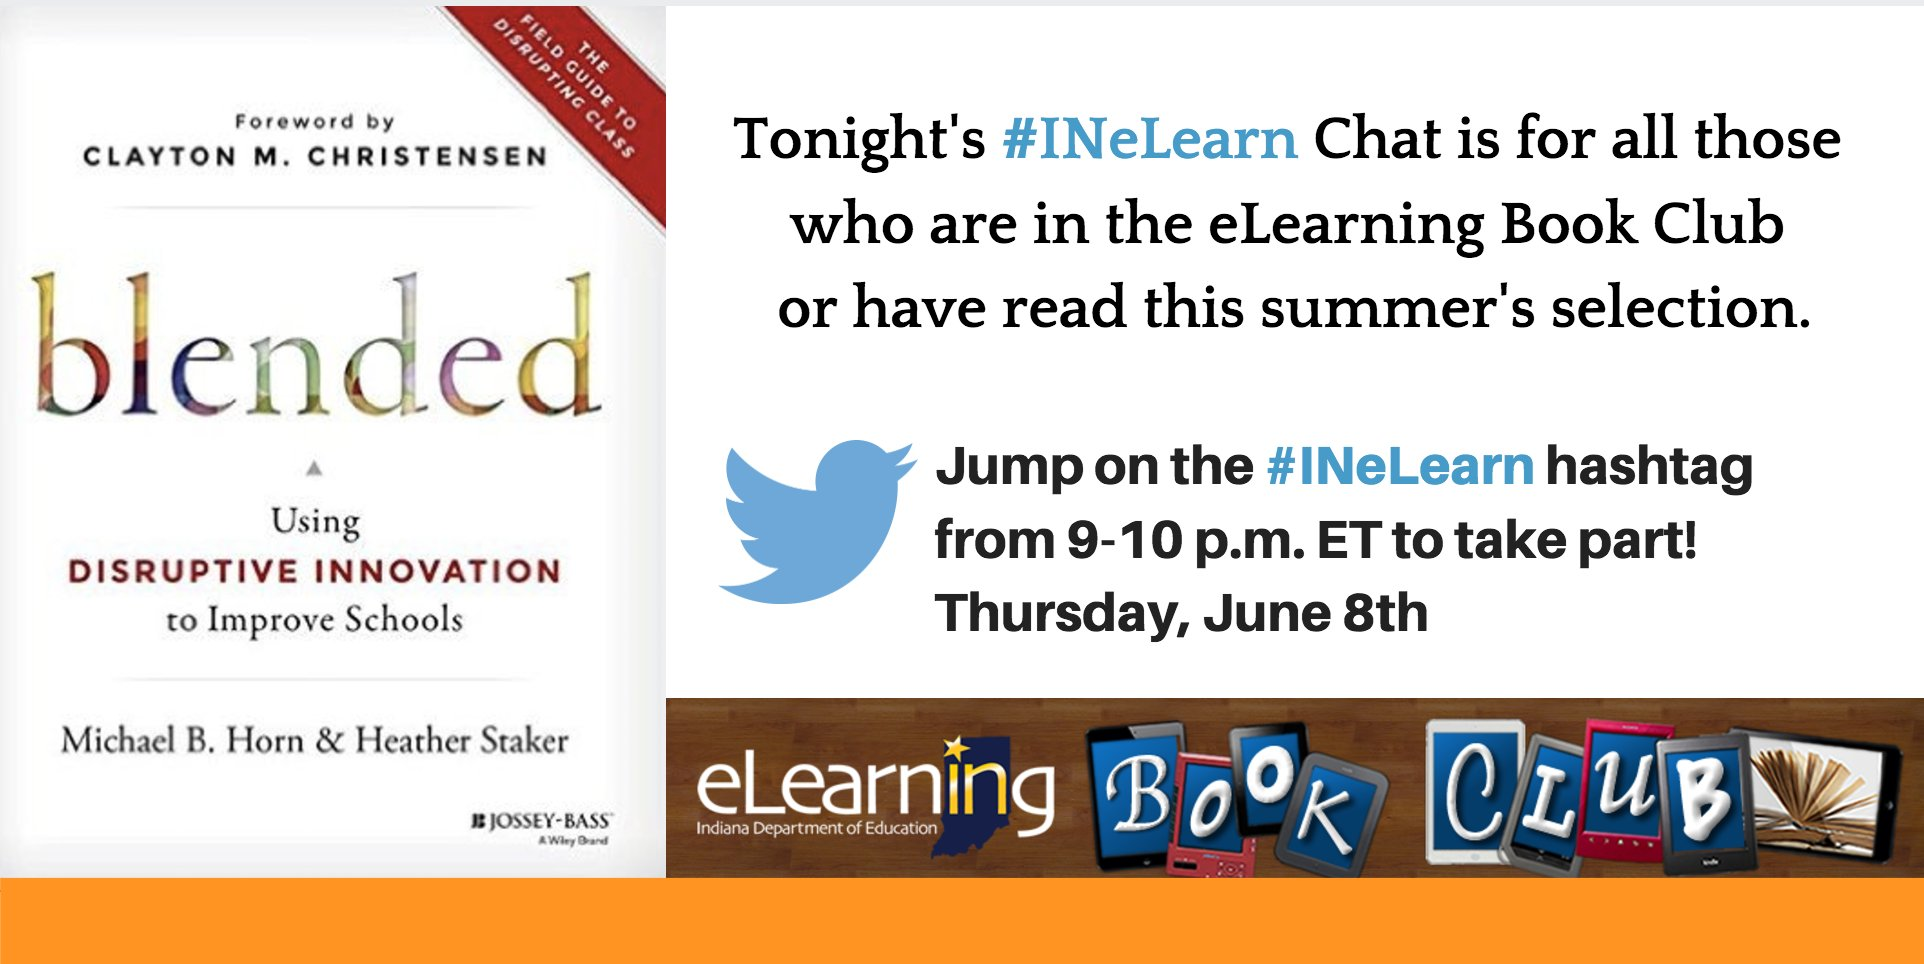 Thumbnail for #INeLearn Chat 6/8/17